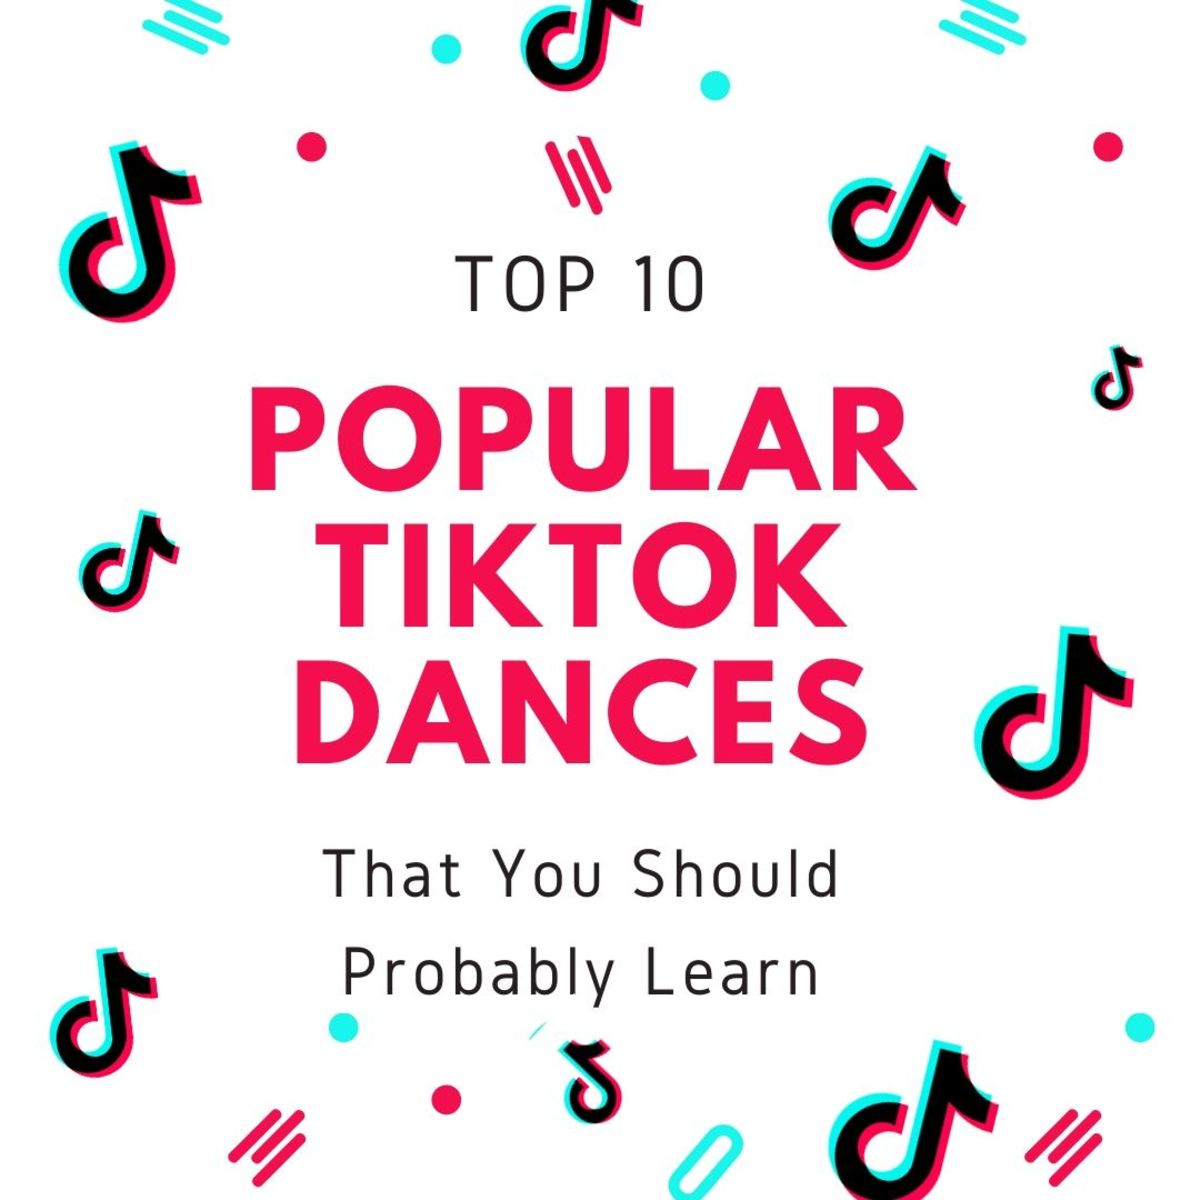 If you want to keep up with the kids, you should probably know these TikTok dances!